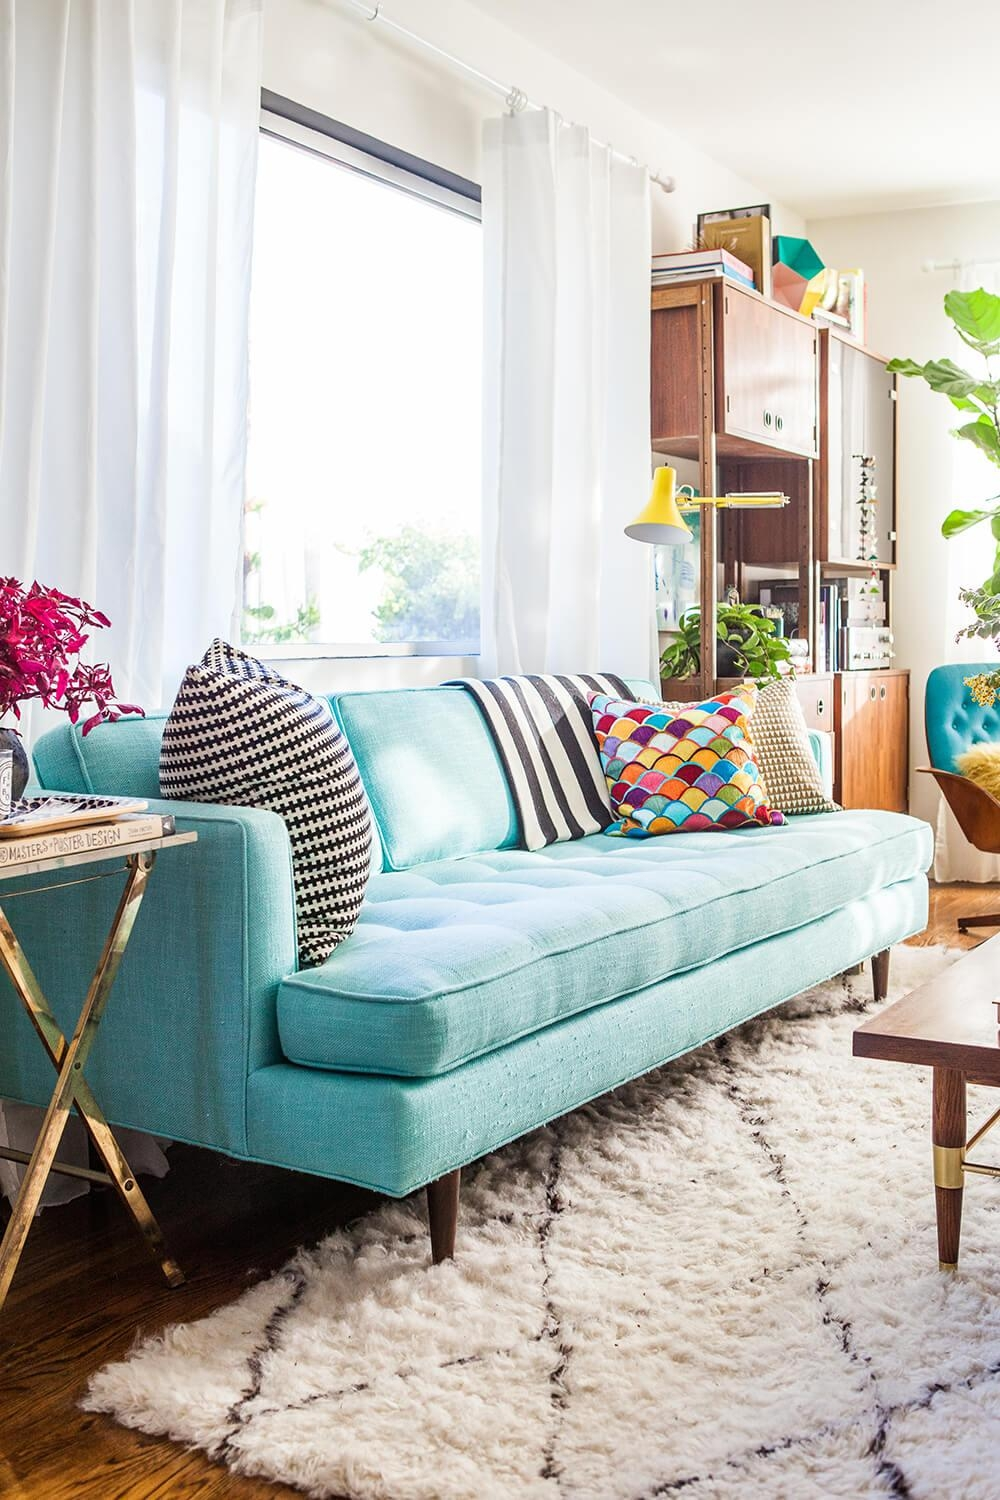 84 Affordable Amazing Sofas Under $1000 - Emily Henderson intended for Affordable Tufted Sofa